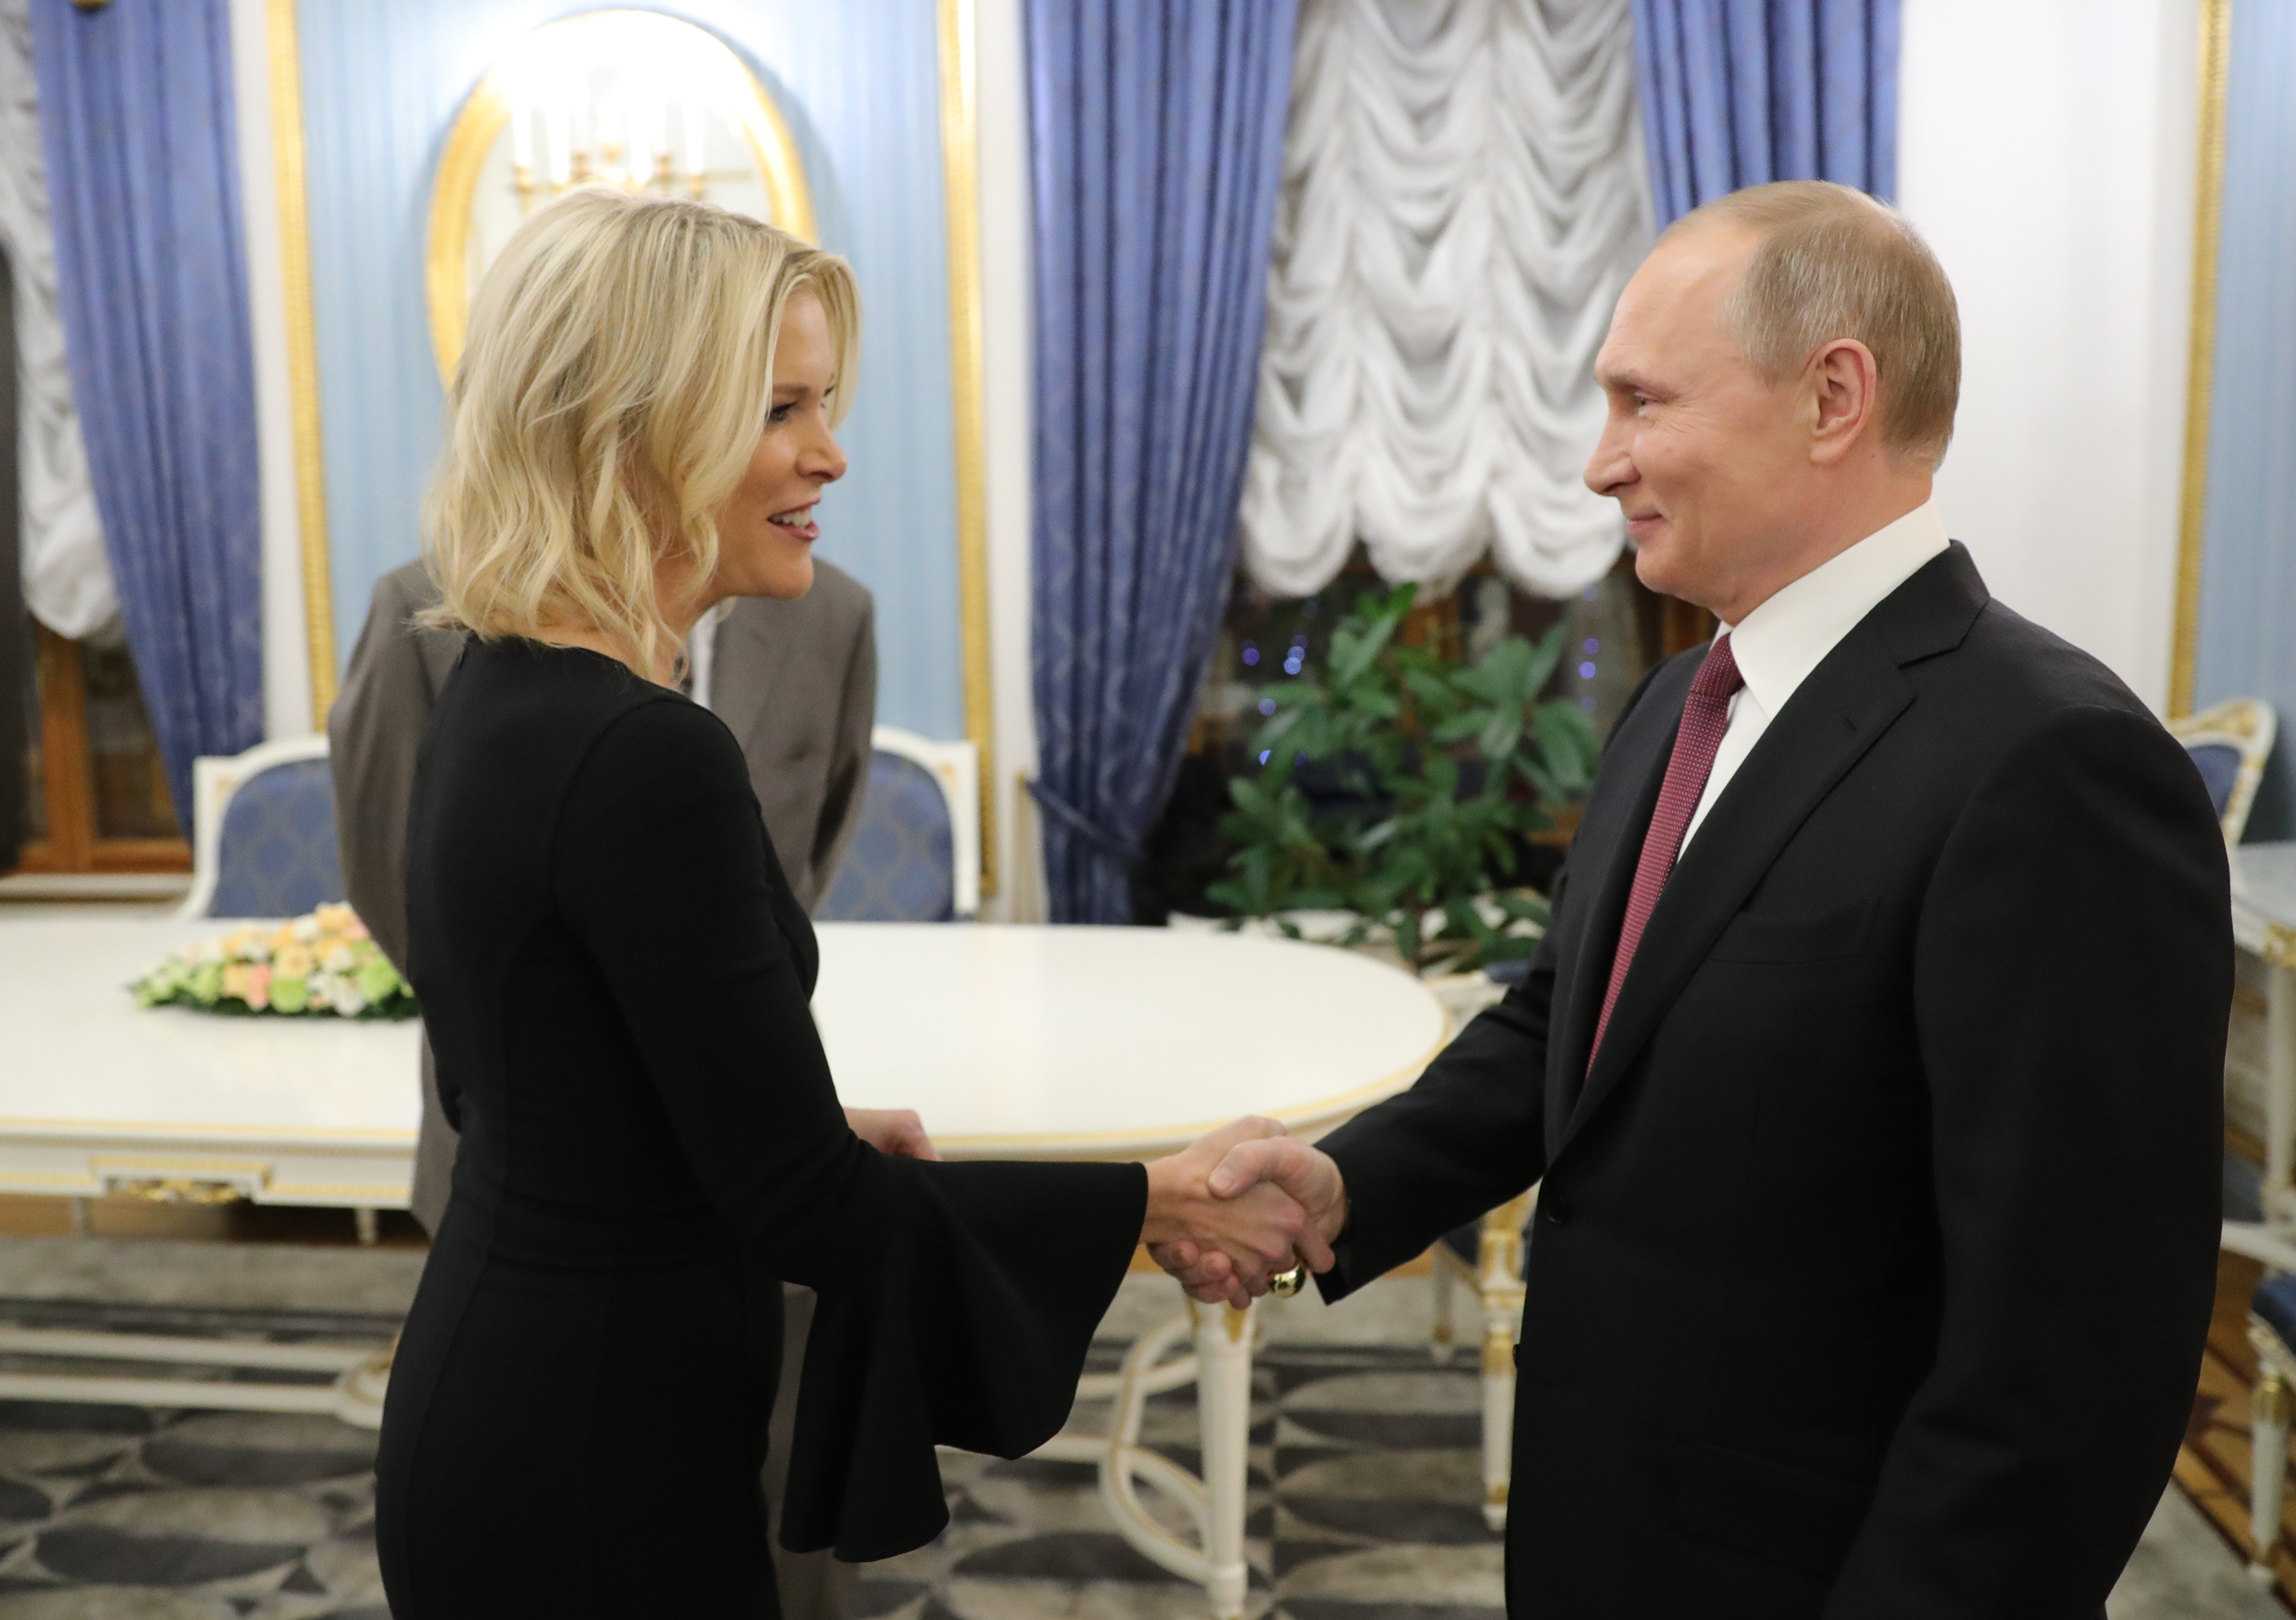 Russia's President Vladimir Putin (R) shakes hands with US NBC news network anchor Megyn Kelly prior to an interview at the Kremlin on March 1, 2018 in Moscow. (MICHAEL KLIMENTYEV/AFP/Getty Images)